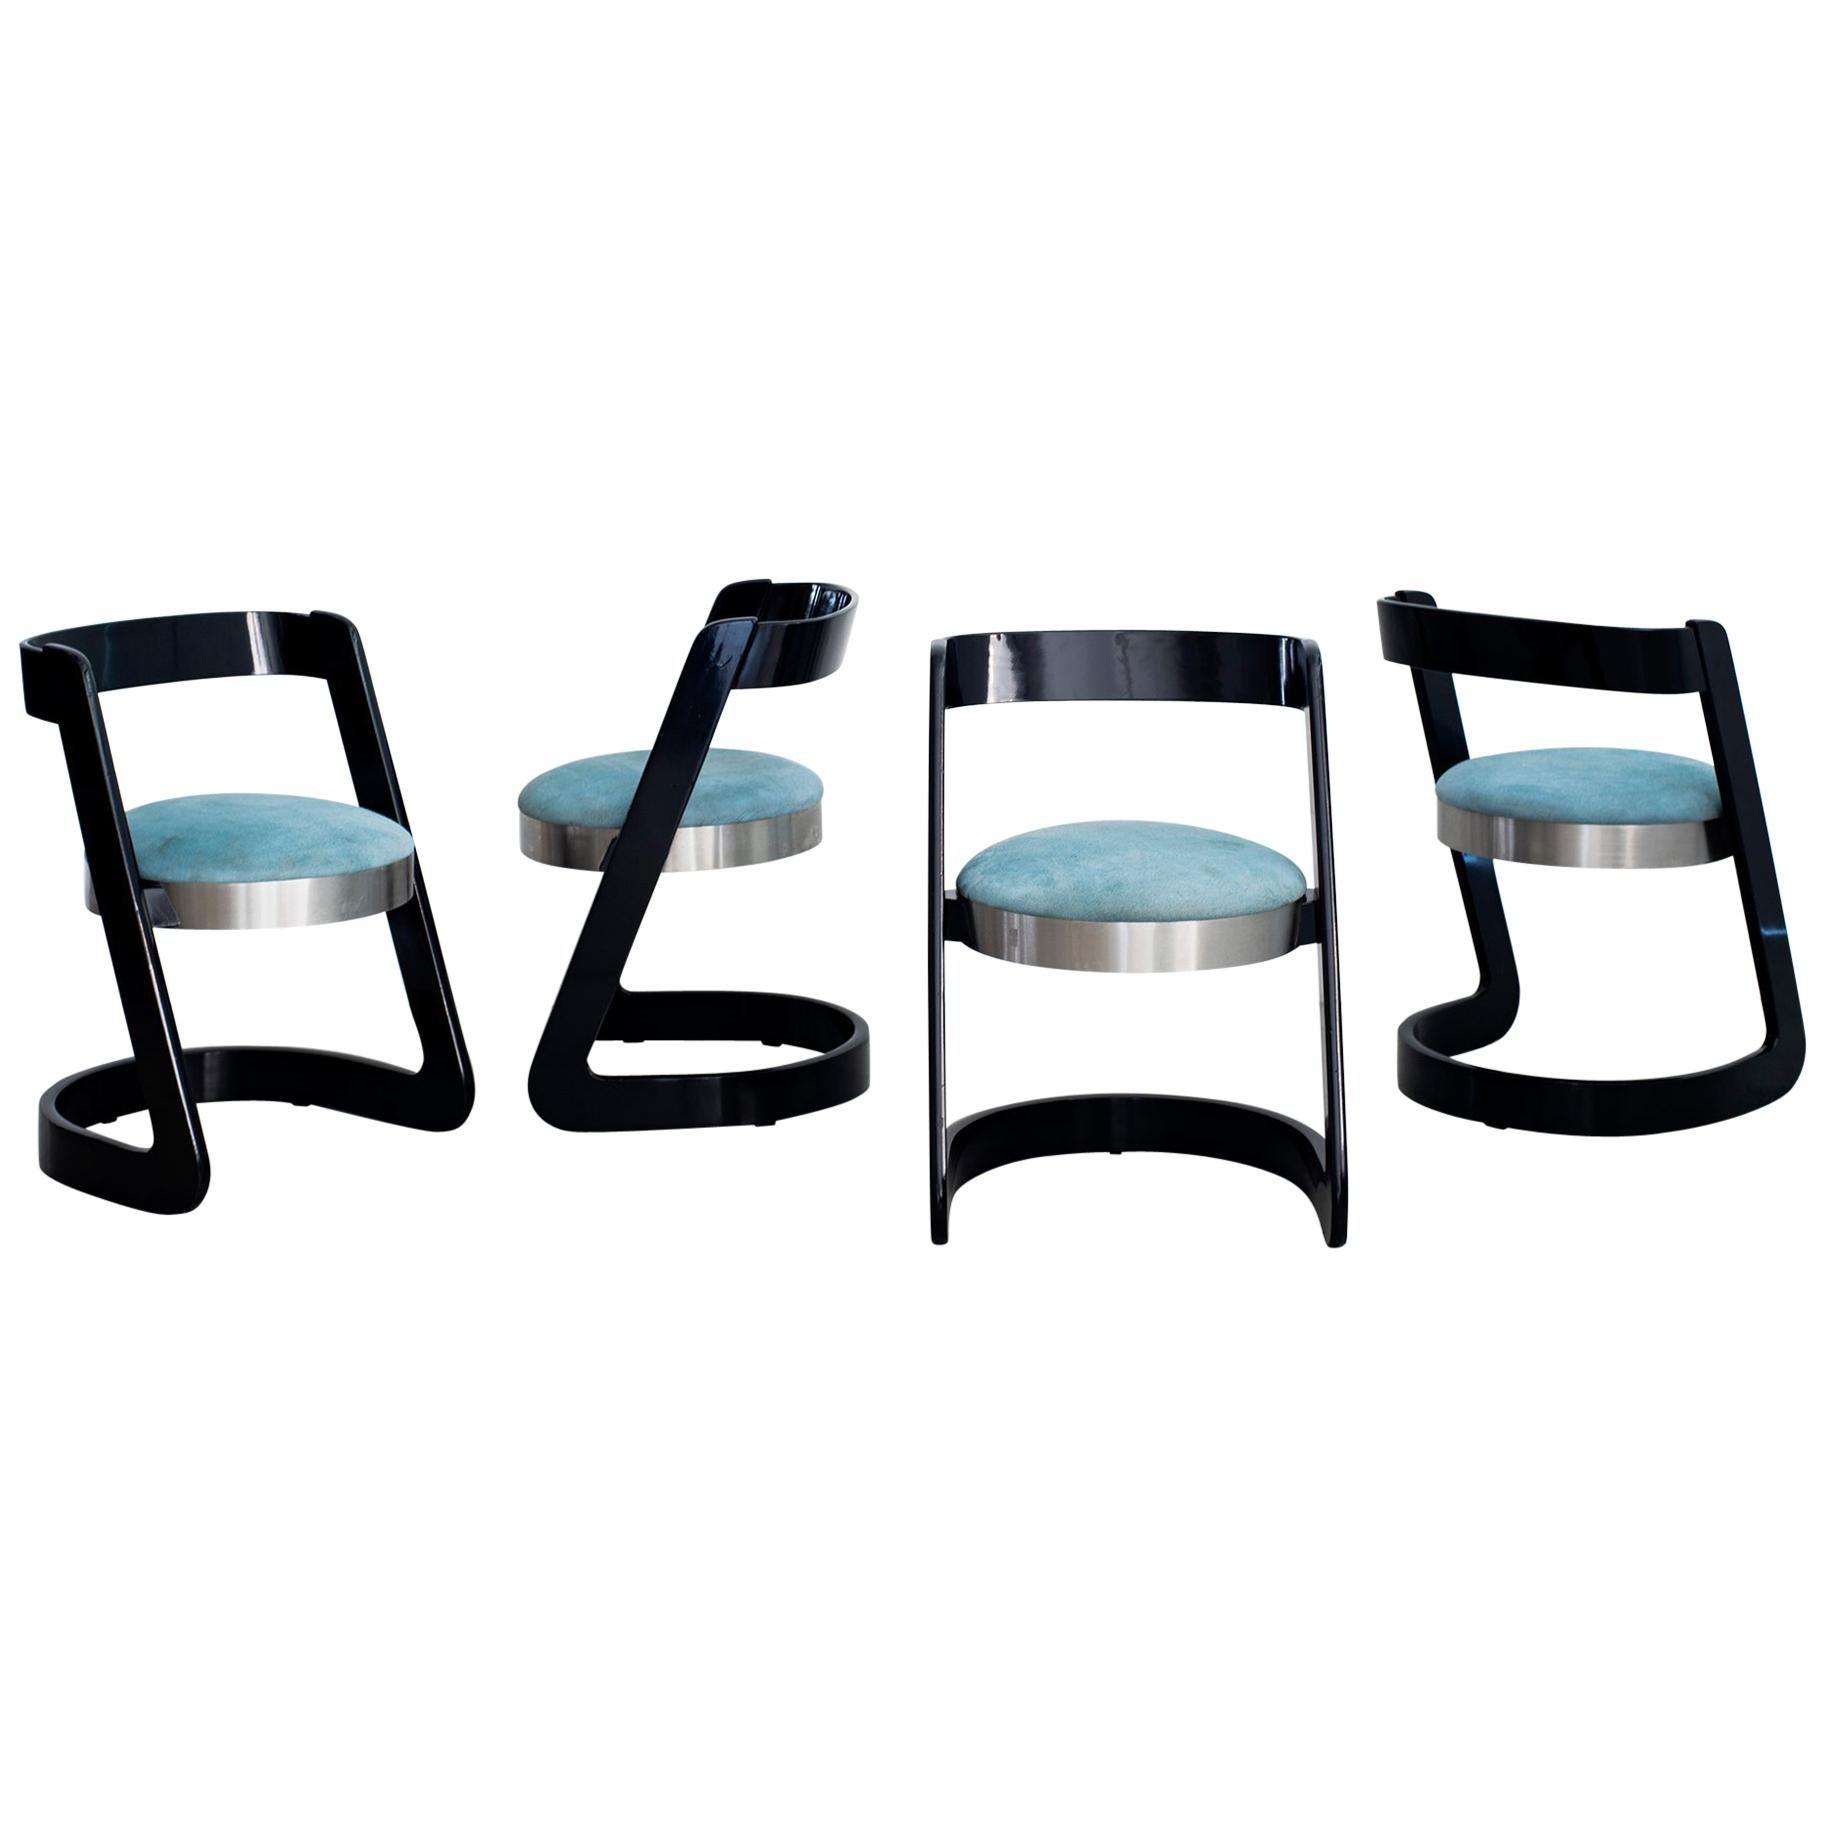 Willy Rizzo Chairs - Set of 4